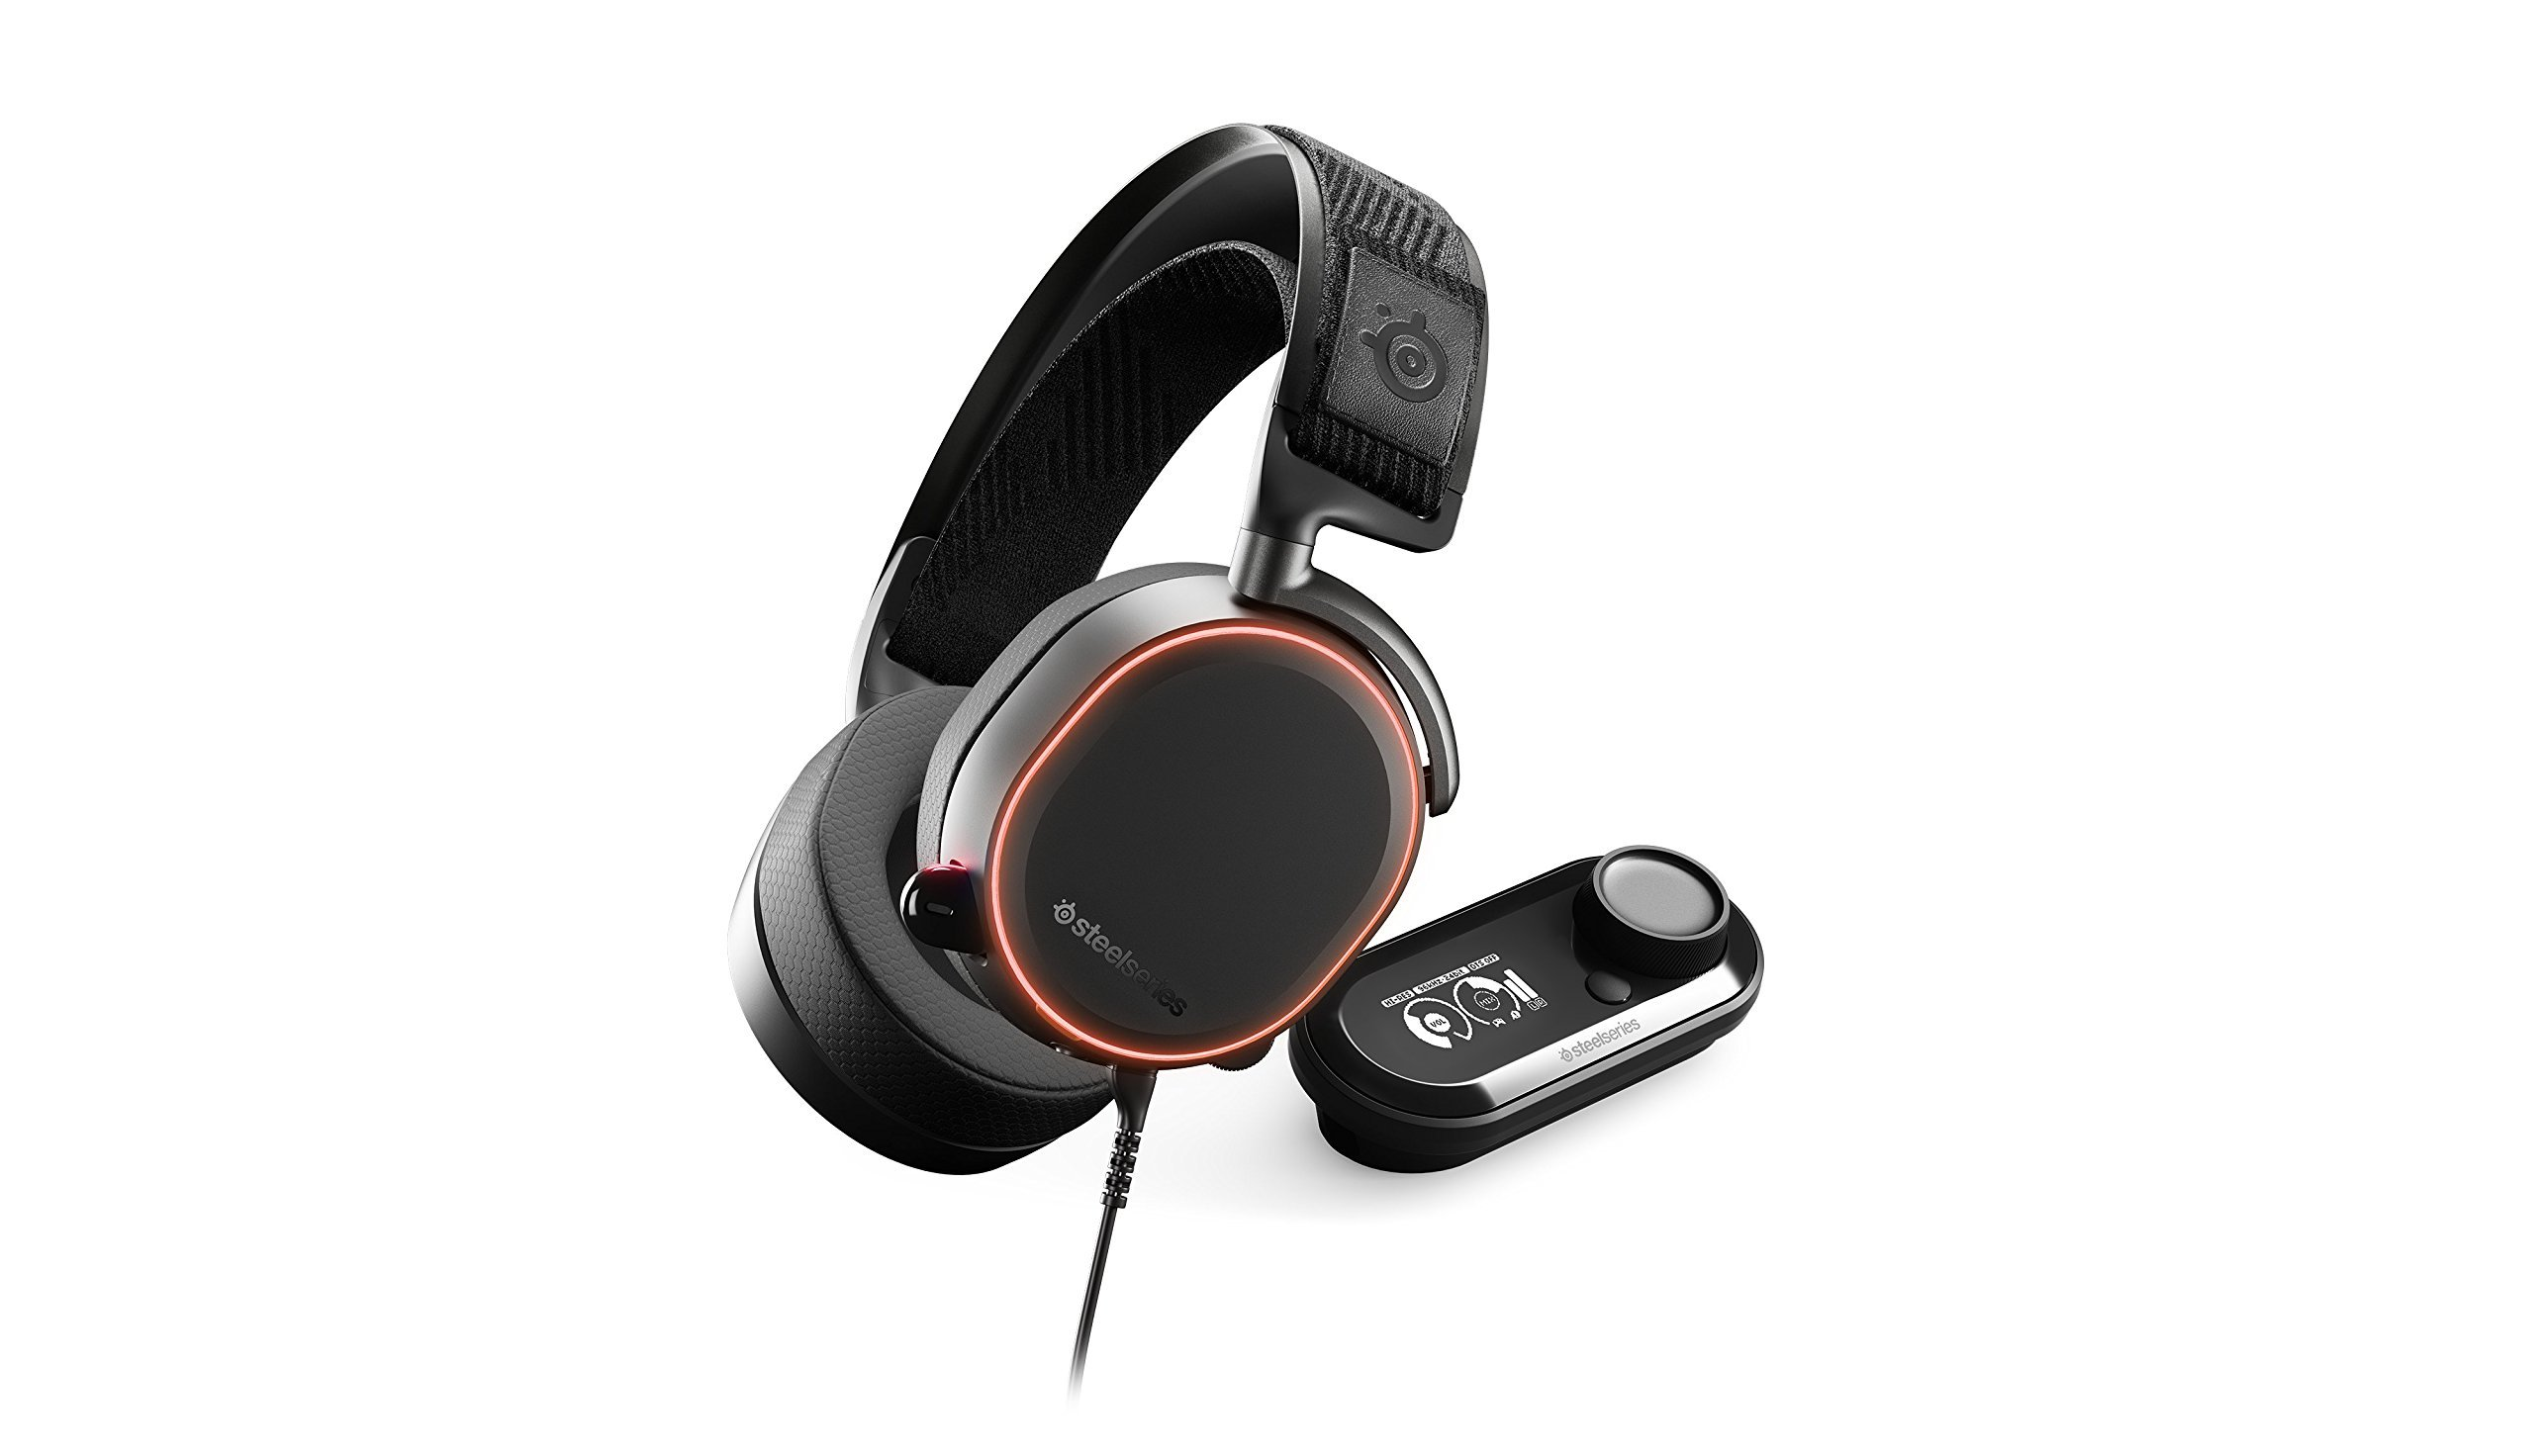 SteelSeries Arctis Pro + GameDAC Gaming Headset - Certified Hi-Res Audio System for PS4 and PC (Renewed) by SteelSeries